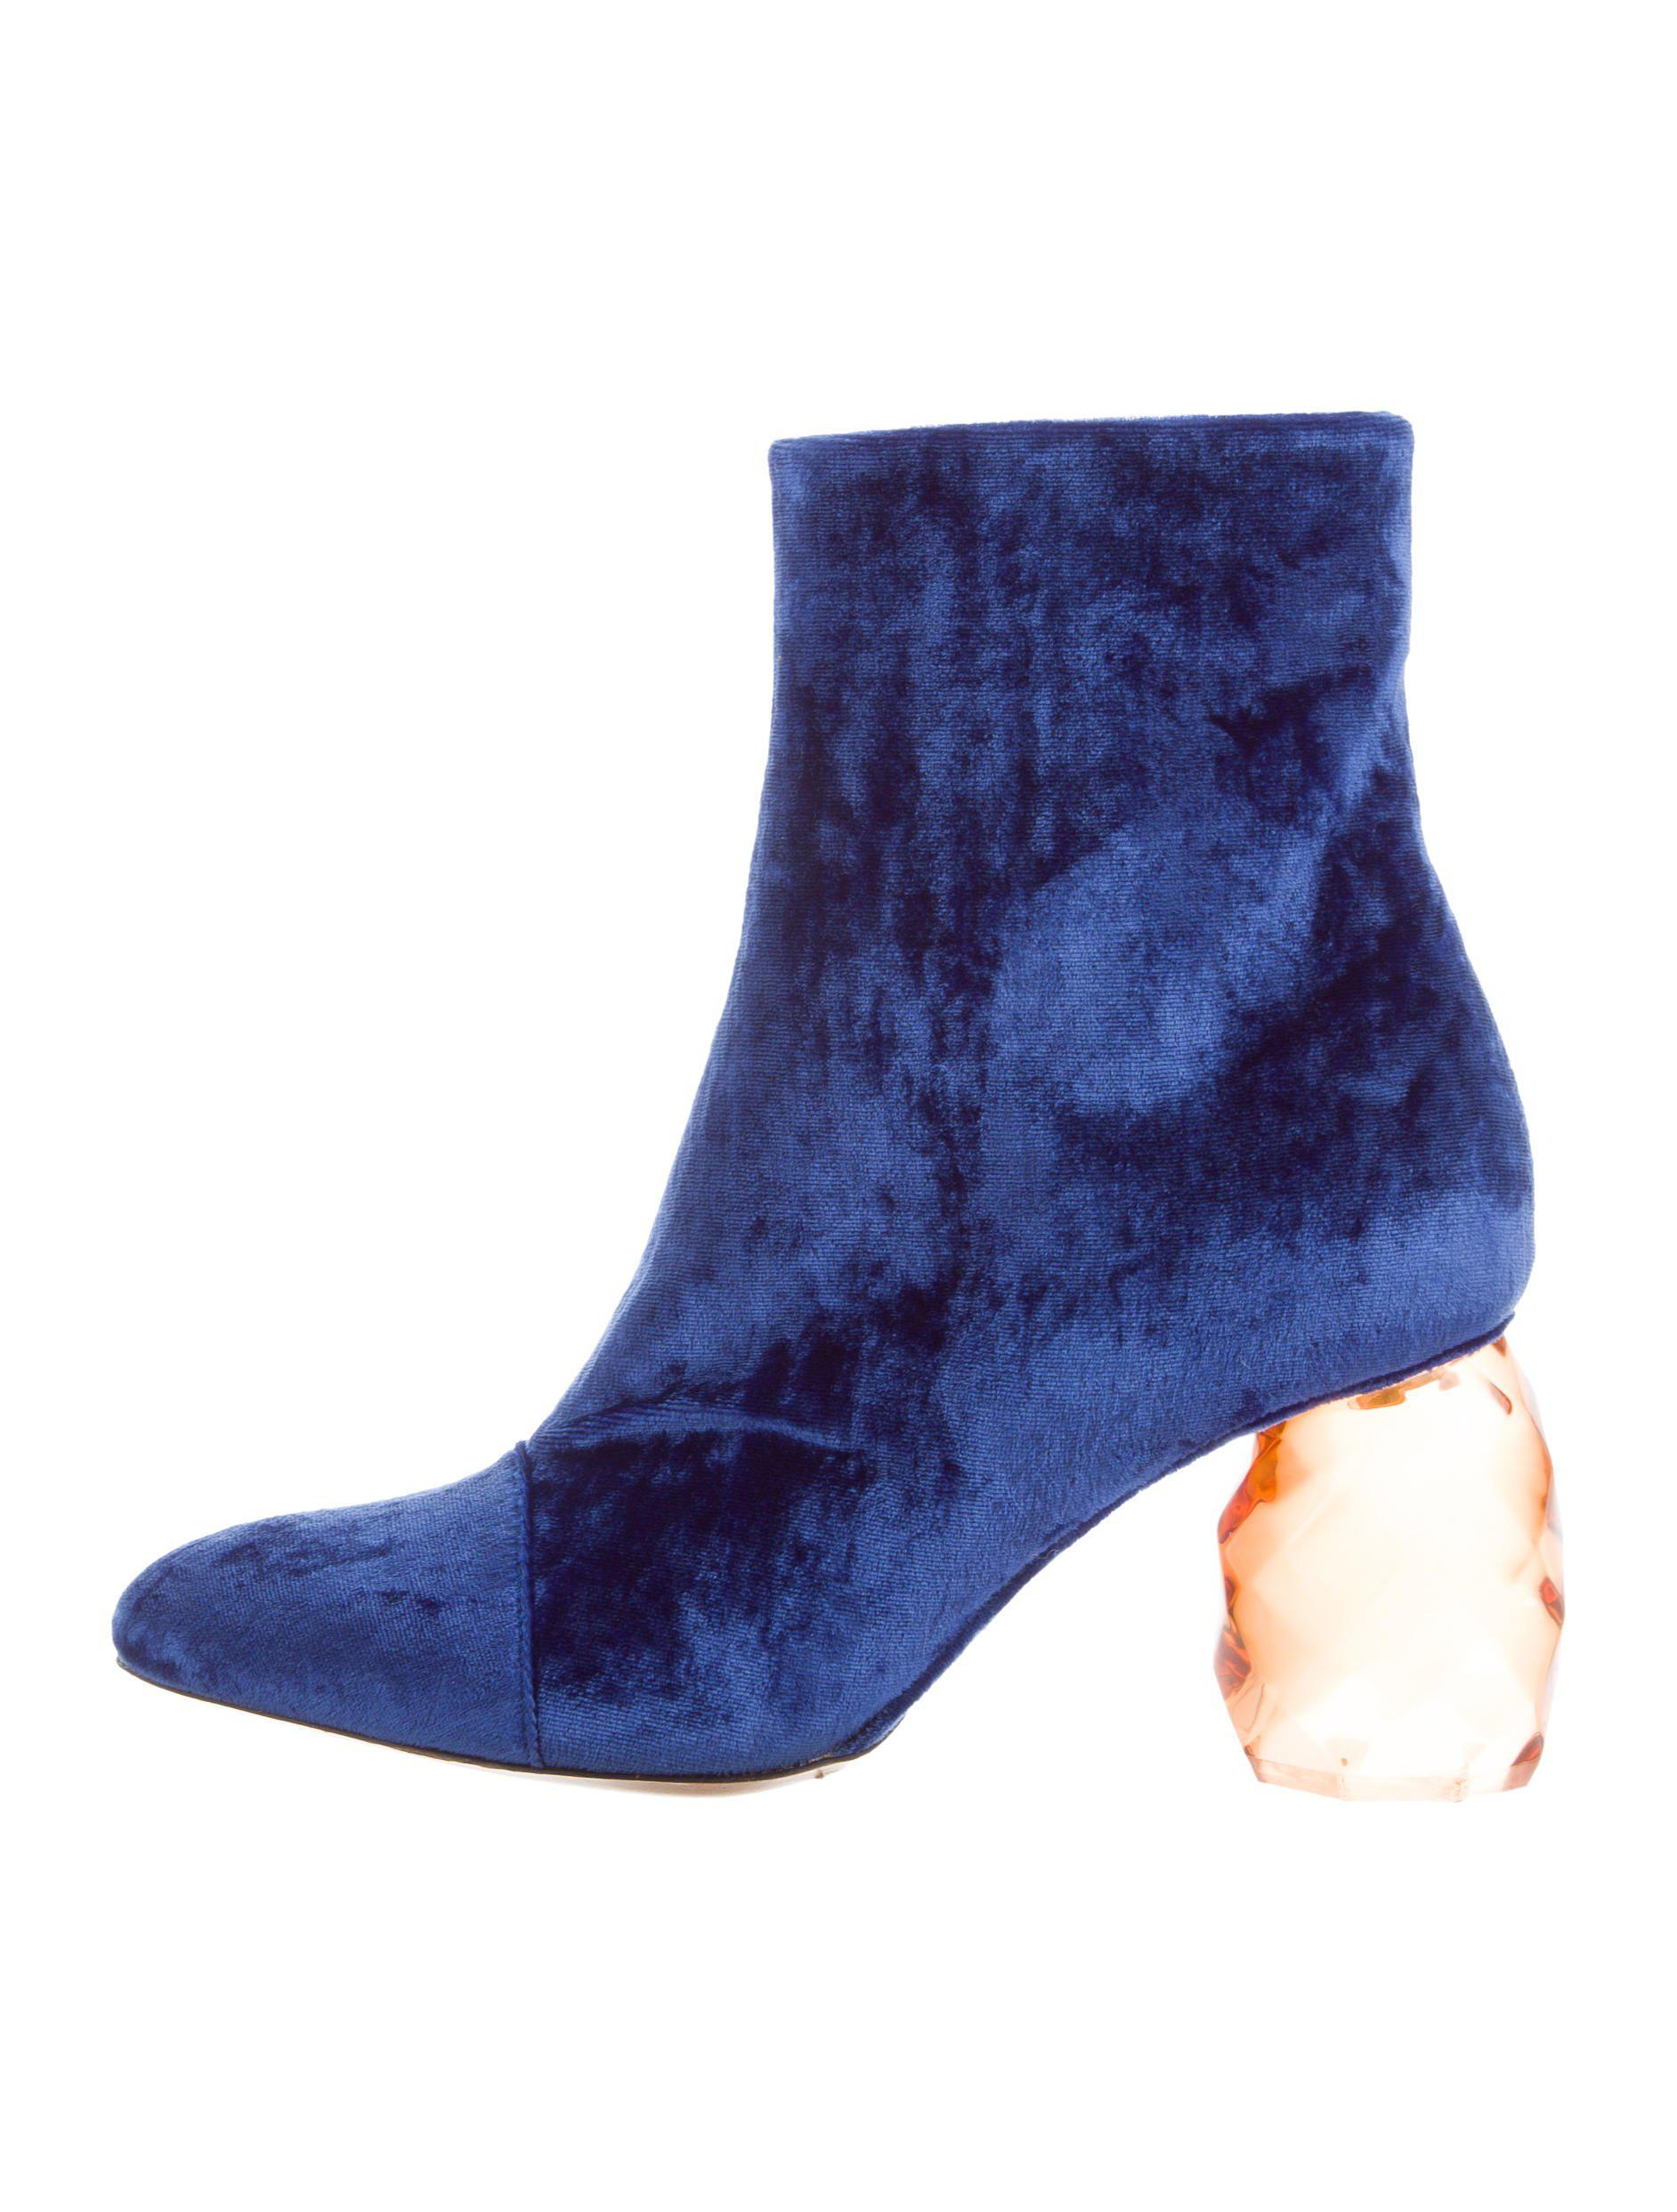 buy cheap authentic clearance prices Dries Van Noten Velvet Pointed-Toe Ankle Boots w/ Tags prices cheap online outlet Inexpensive discount pay with paypal AvJ8lmL